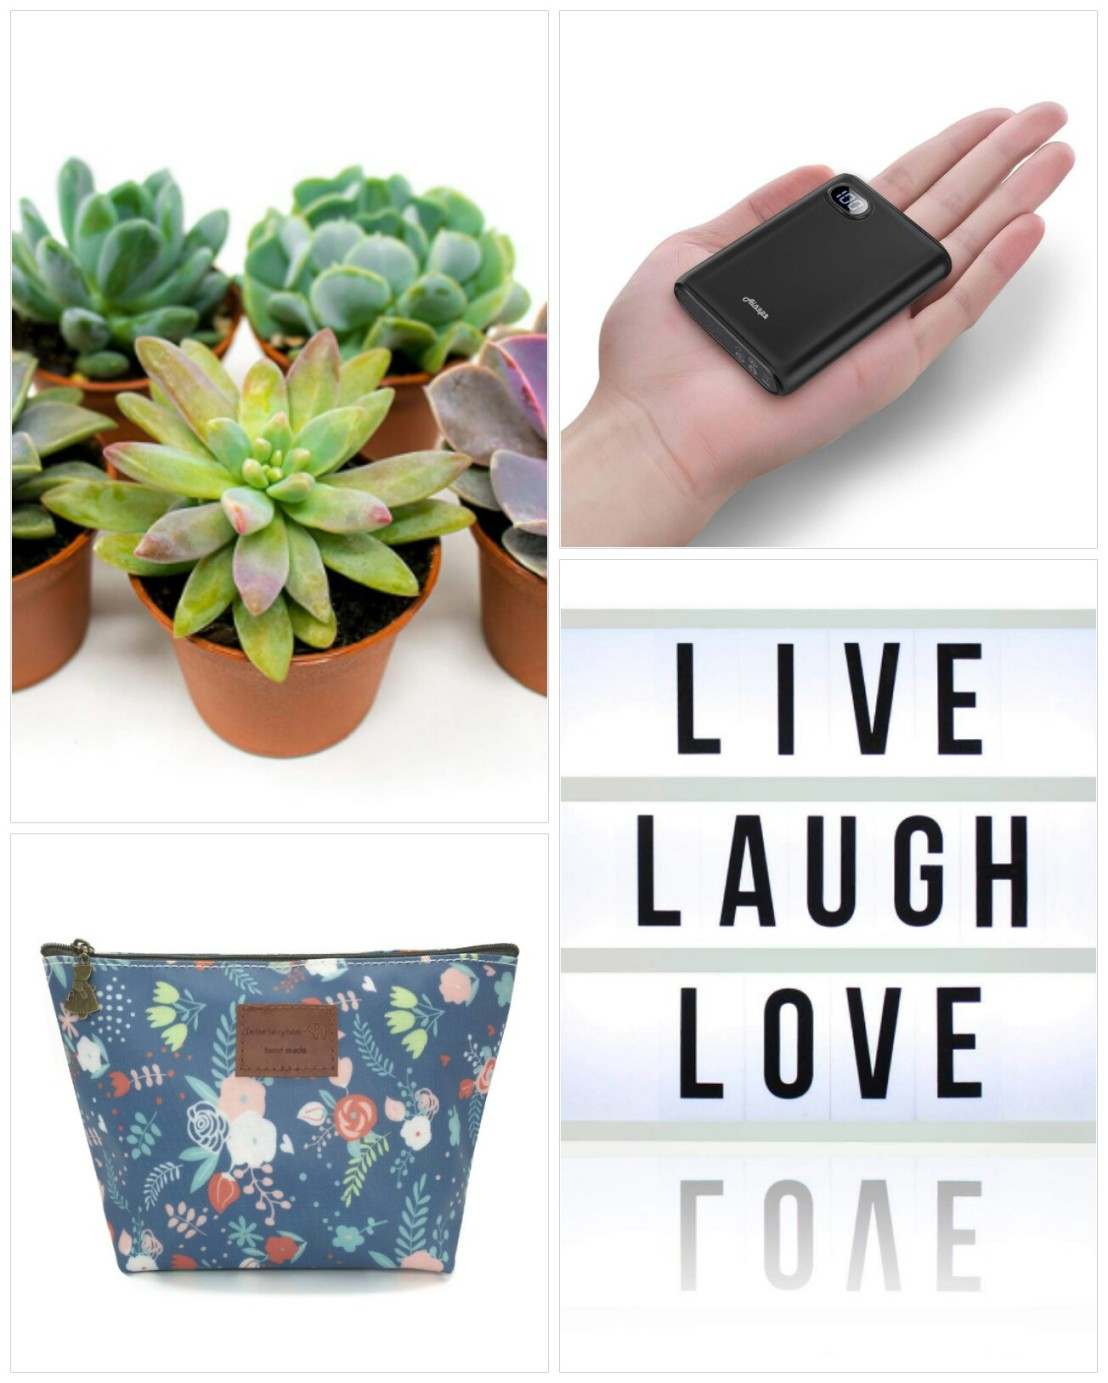 A collage of Christmas gift ideas for her - part 1